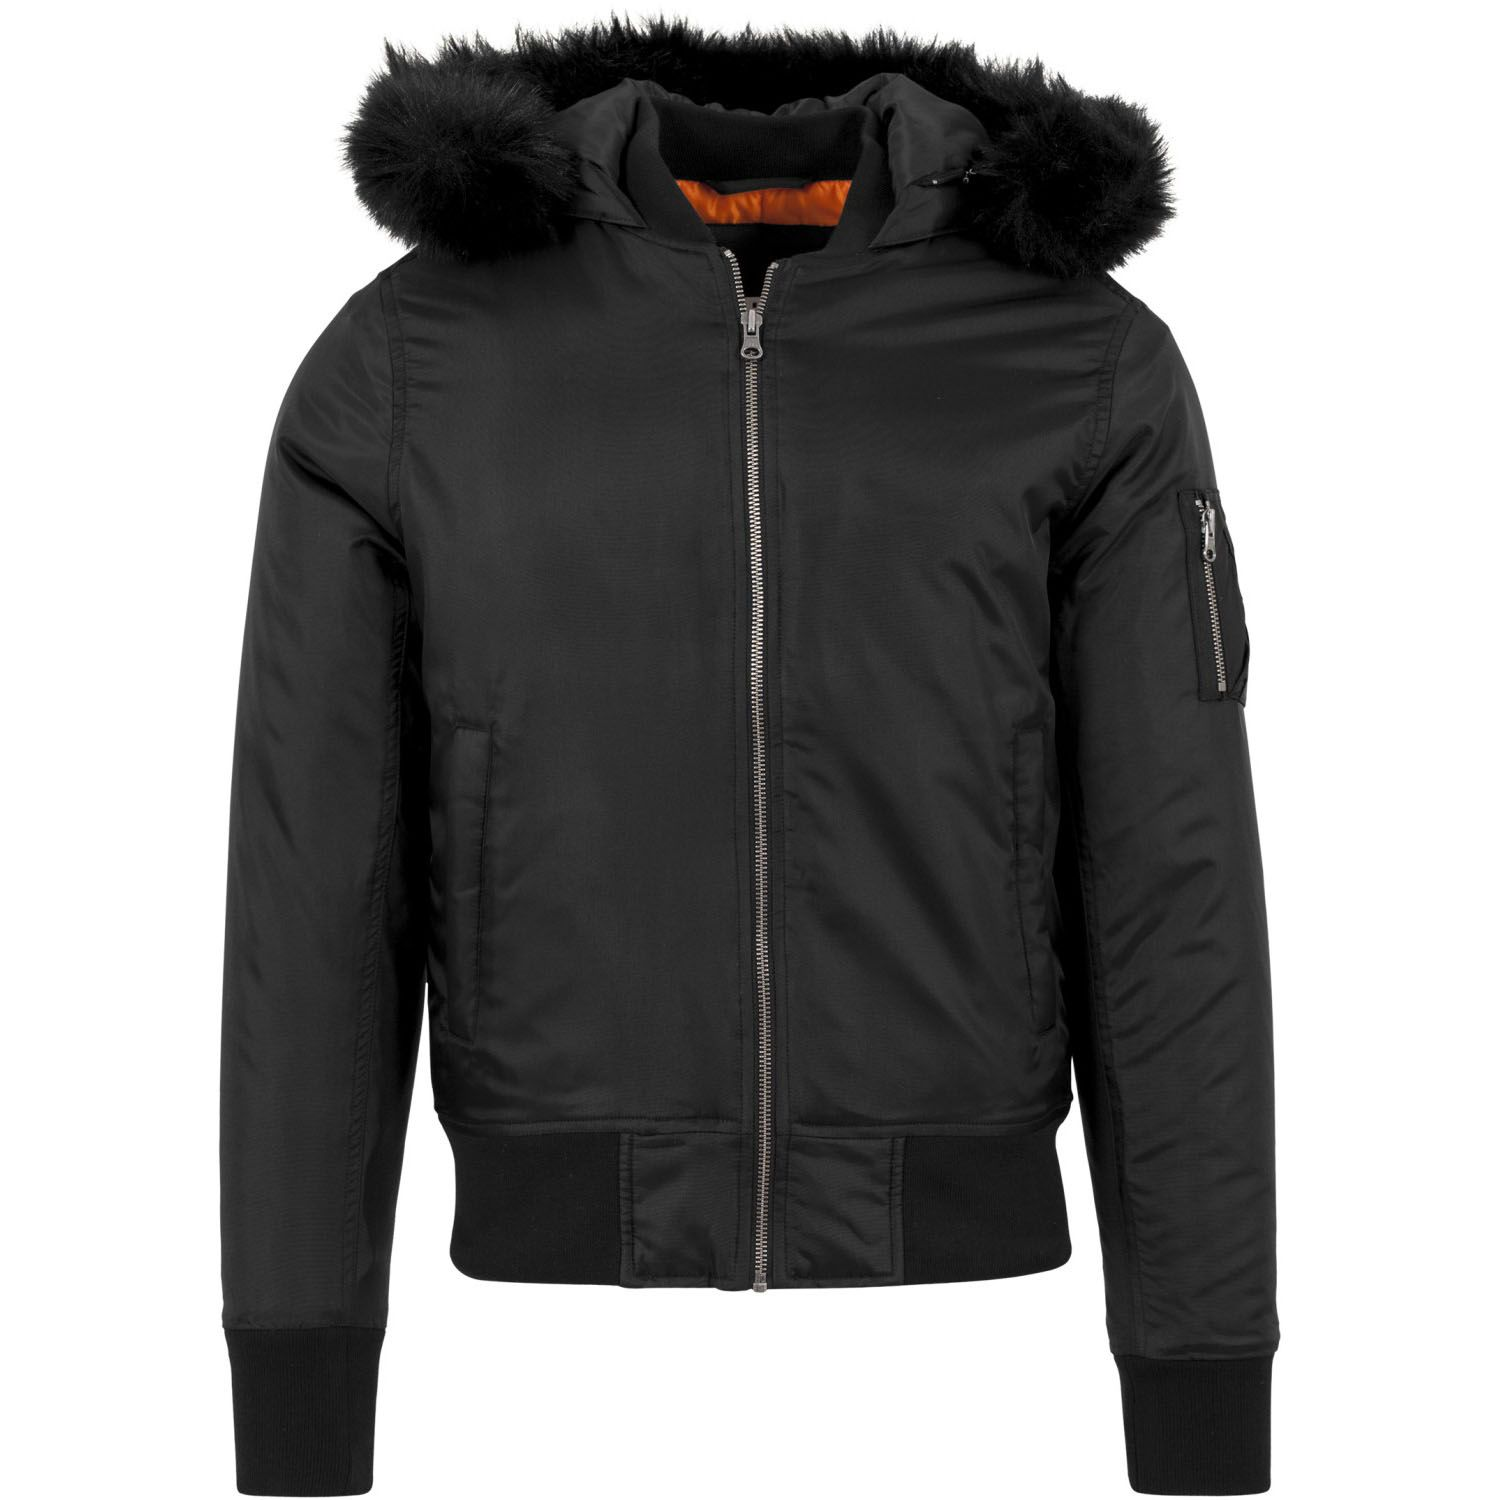 Hooded Basic Bomber Jacket Urban Classics Streetwear Men XXL Black. About  this product. Picture 1 of 5  Picture 2 of 5 ... 73a4b656904